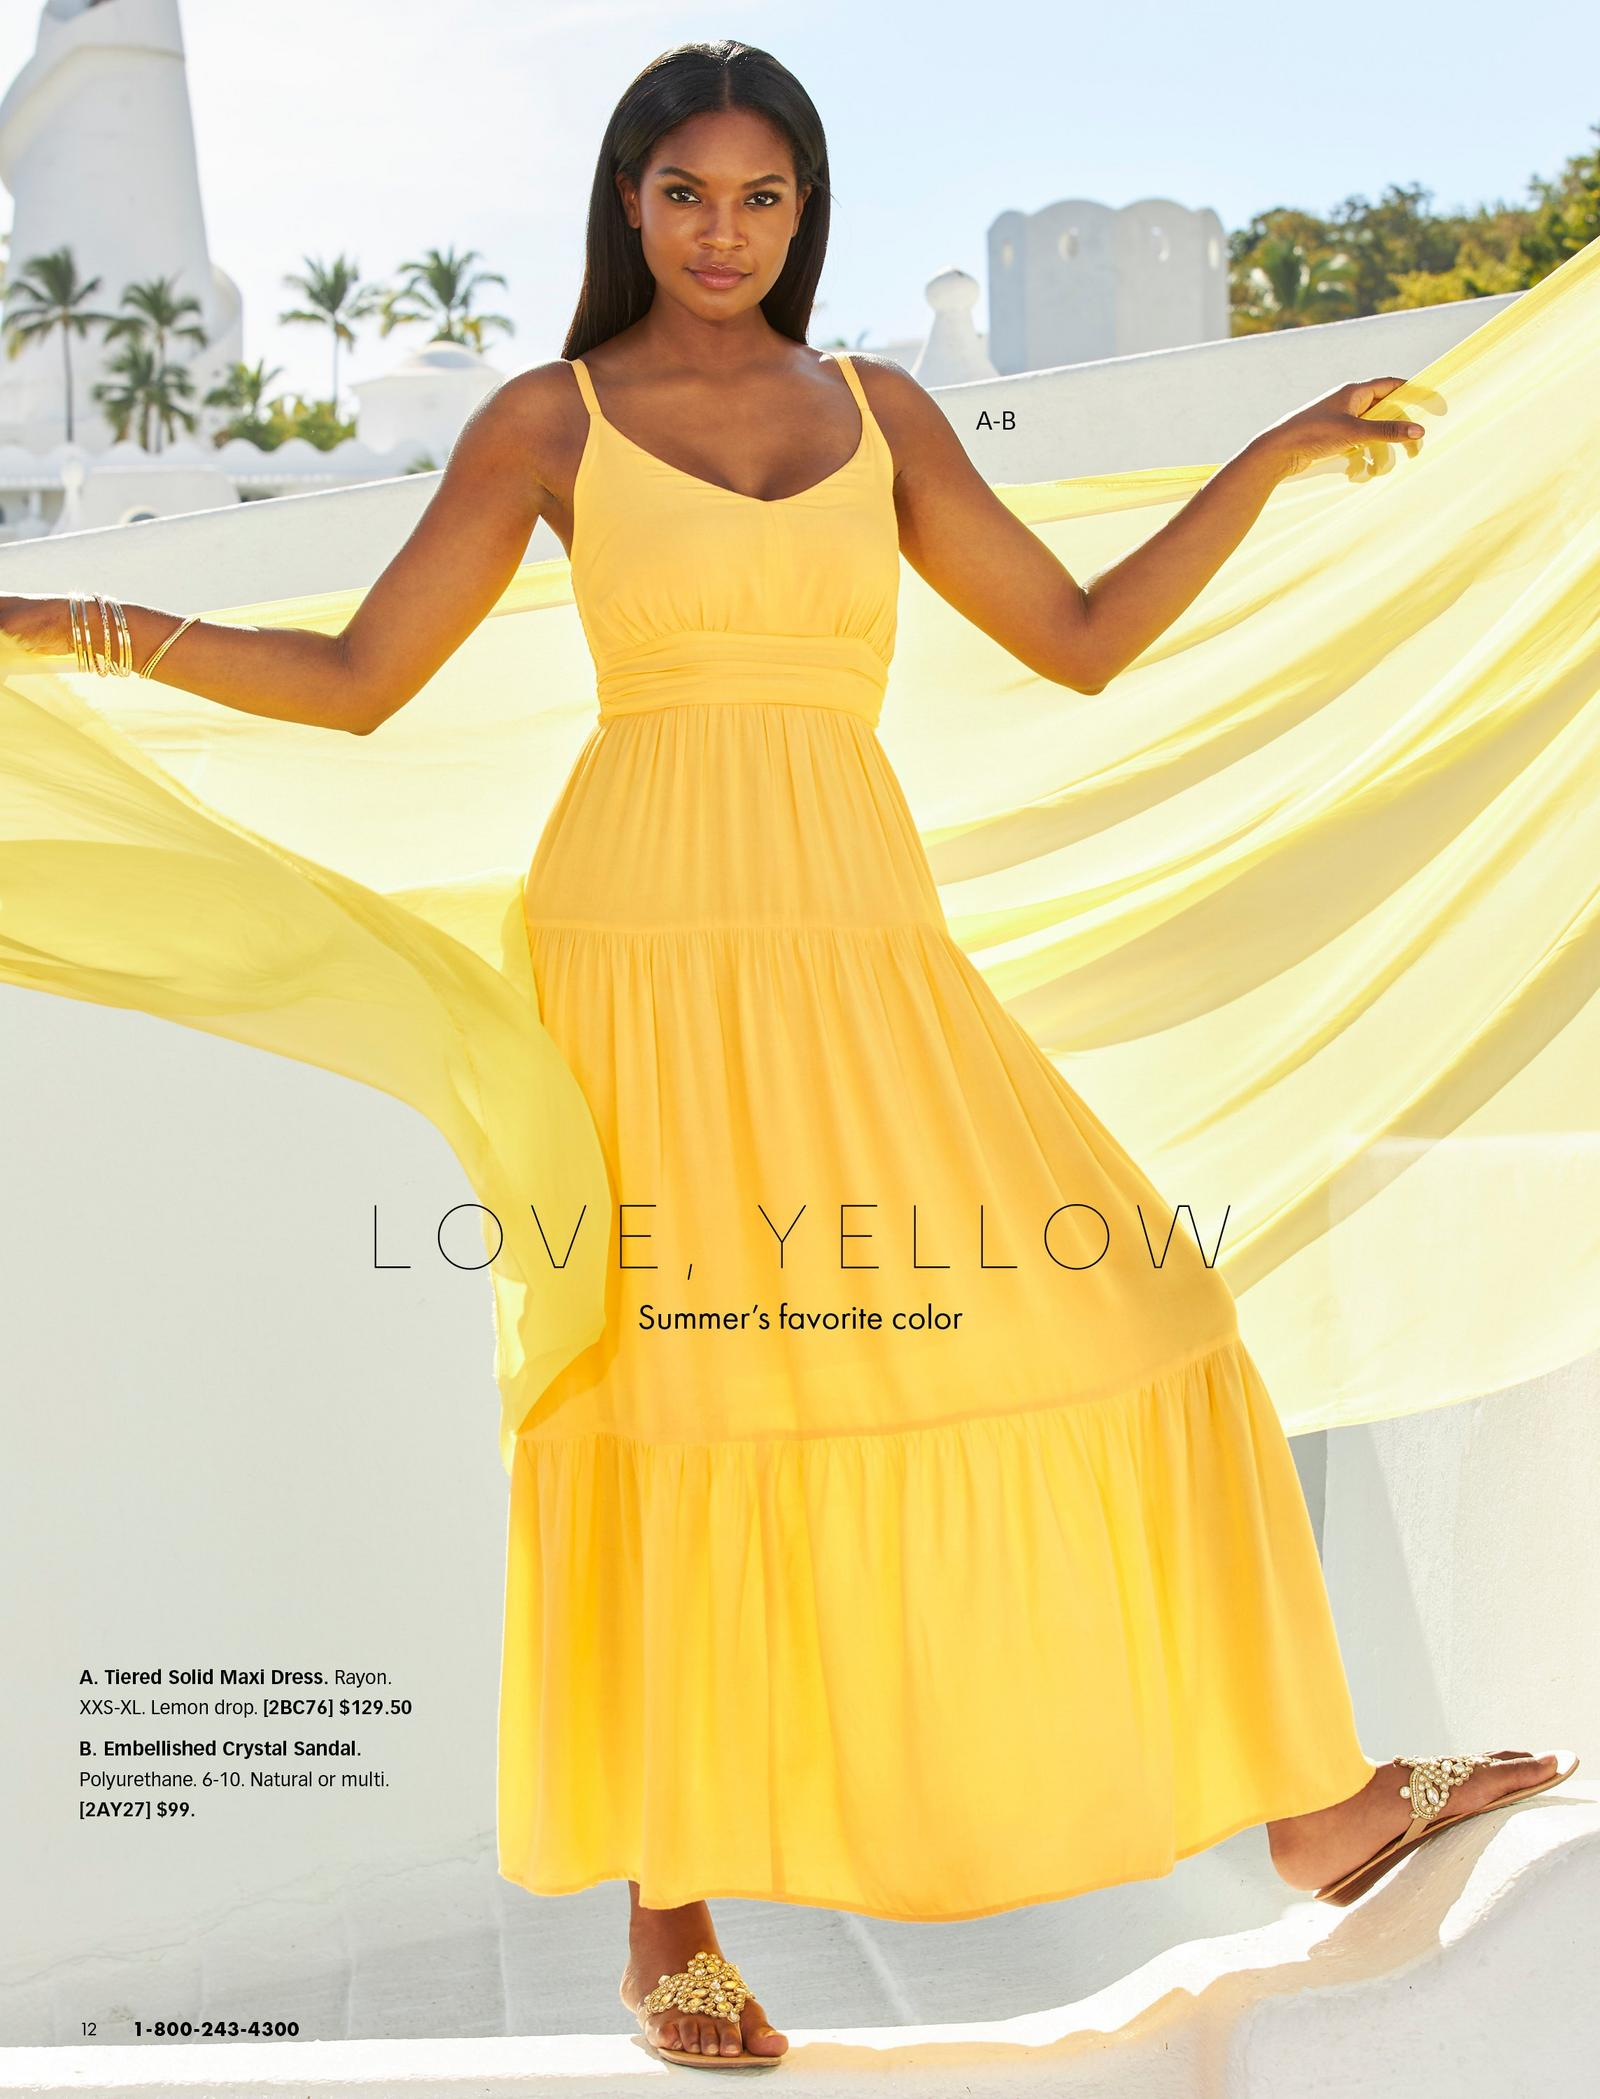 model wearing a yellow sleeveless maxi dress and gold crystal embellished sandals.